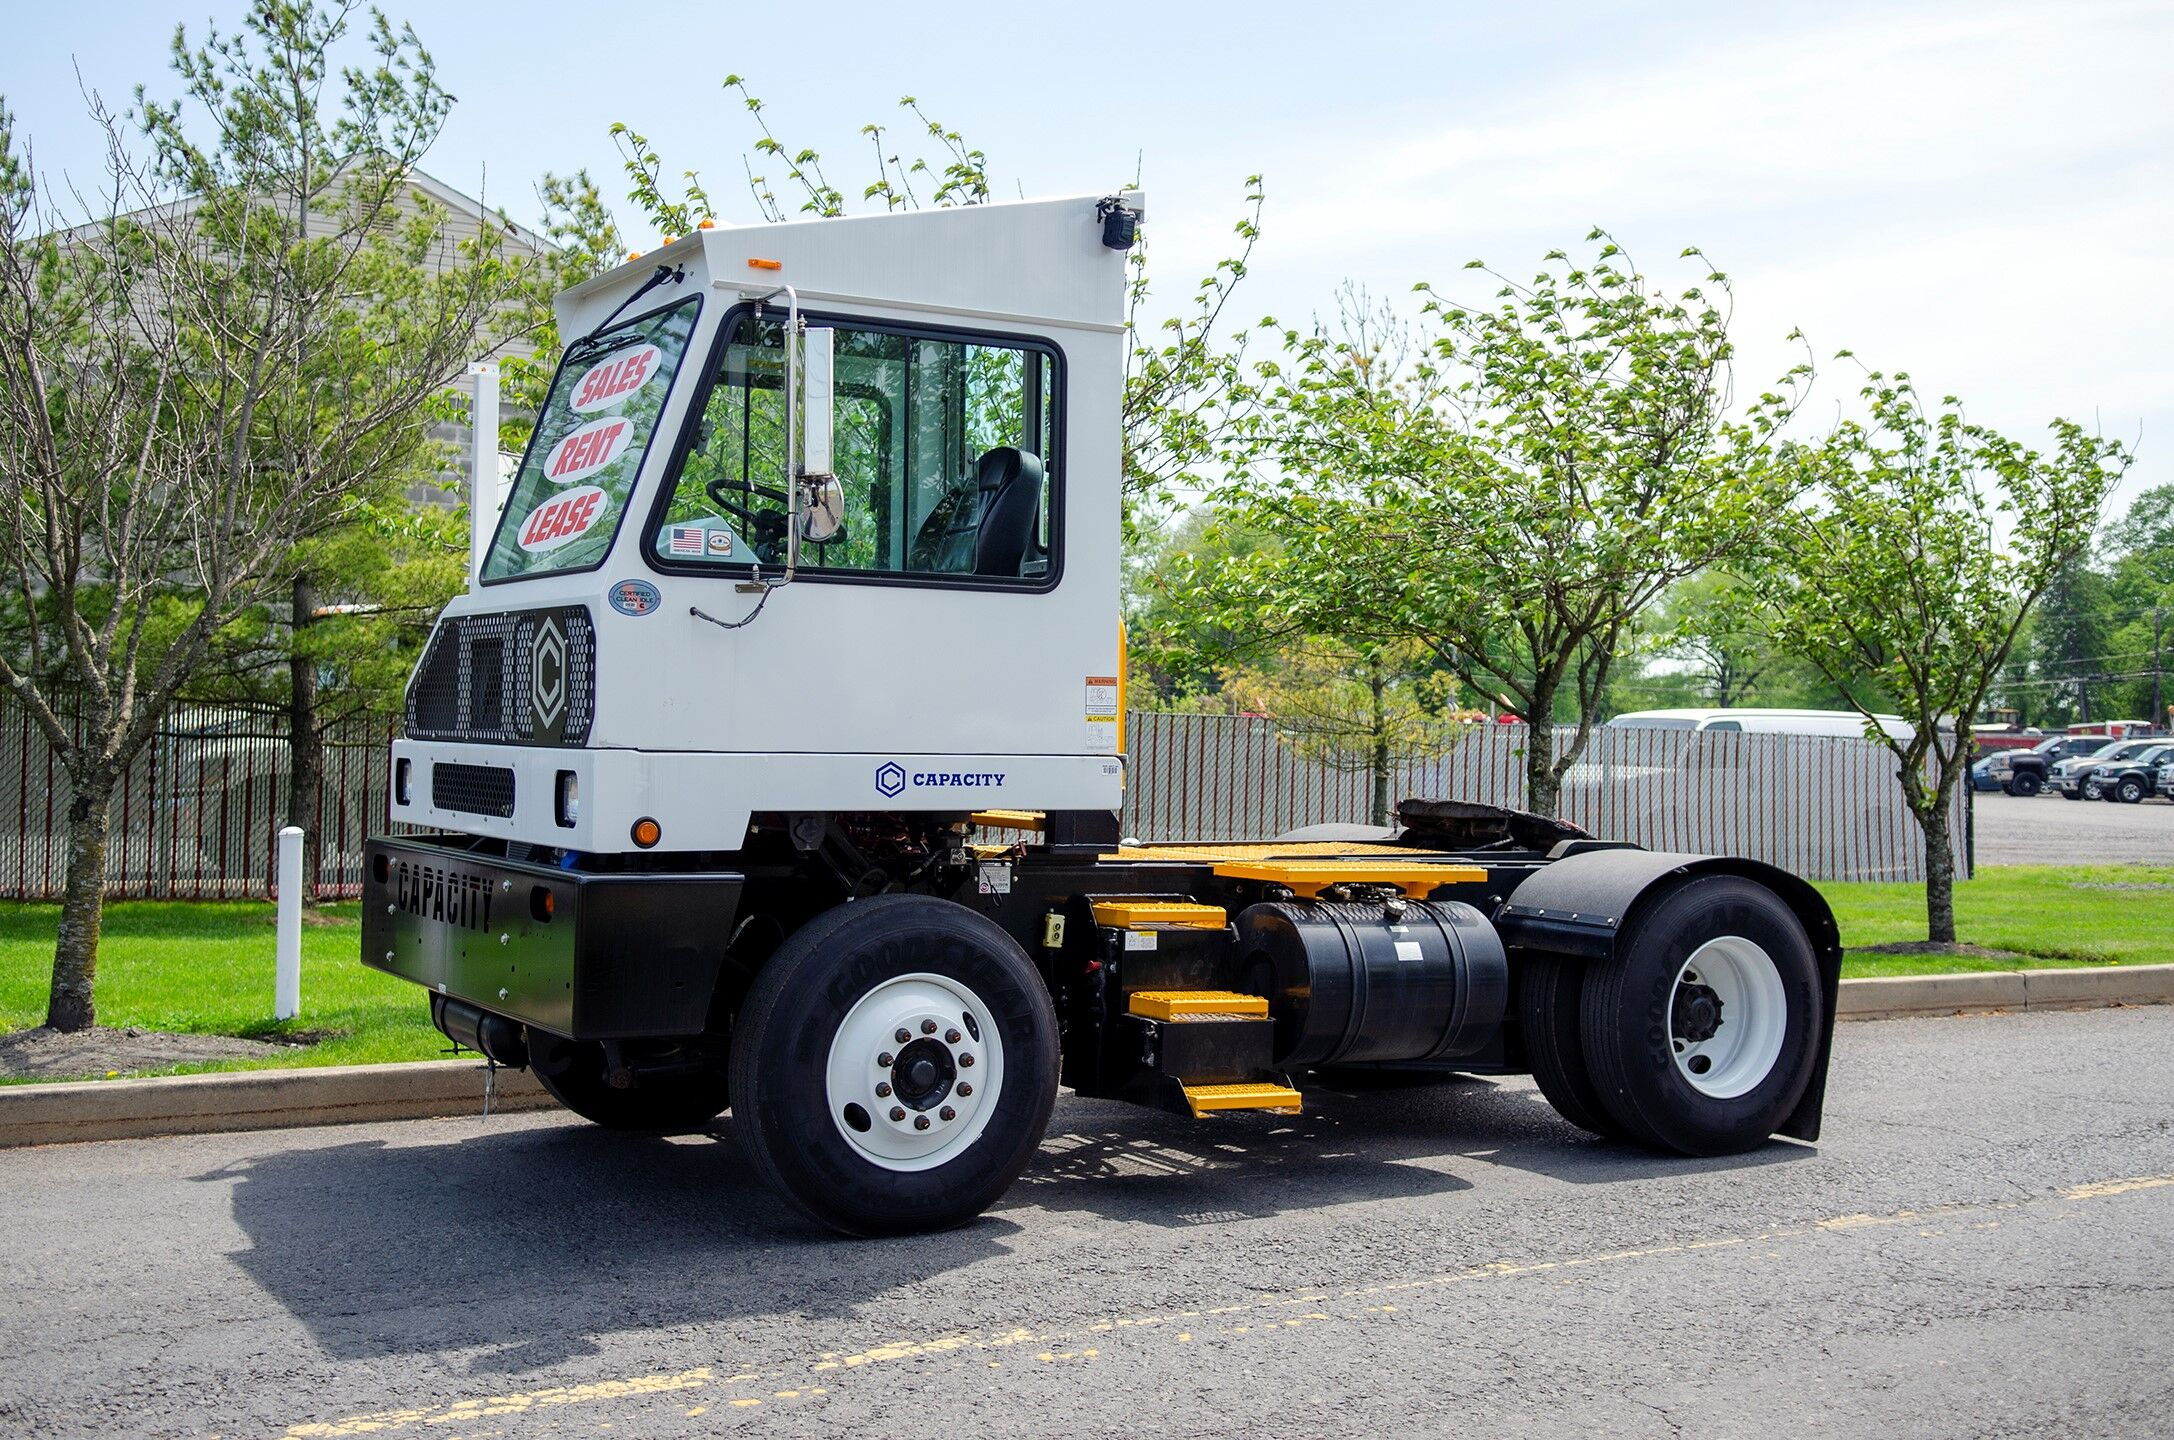 Side view of Capacity yard truck